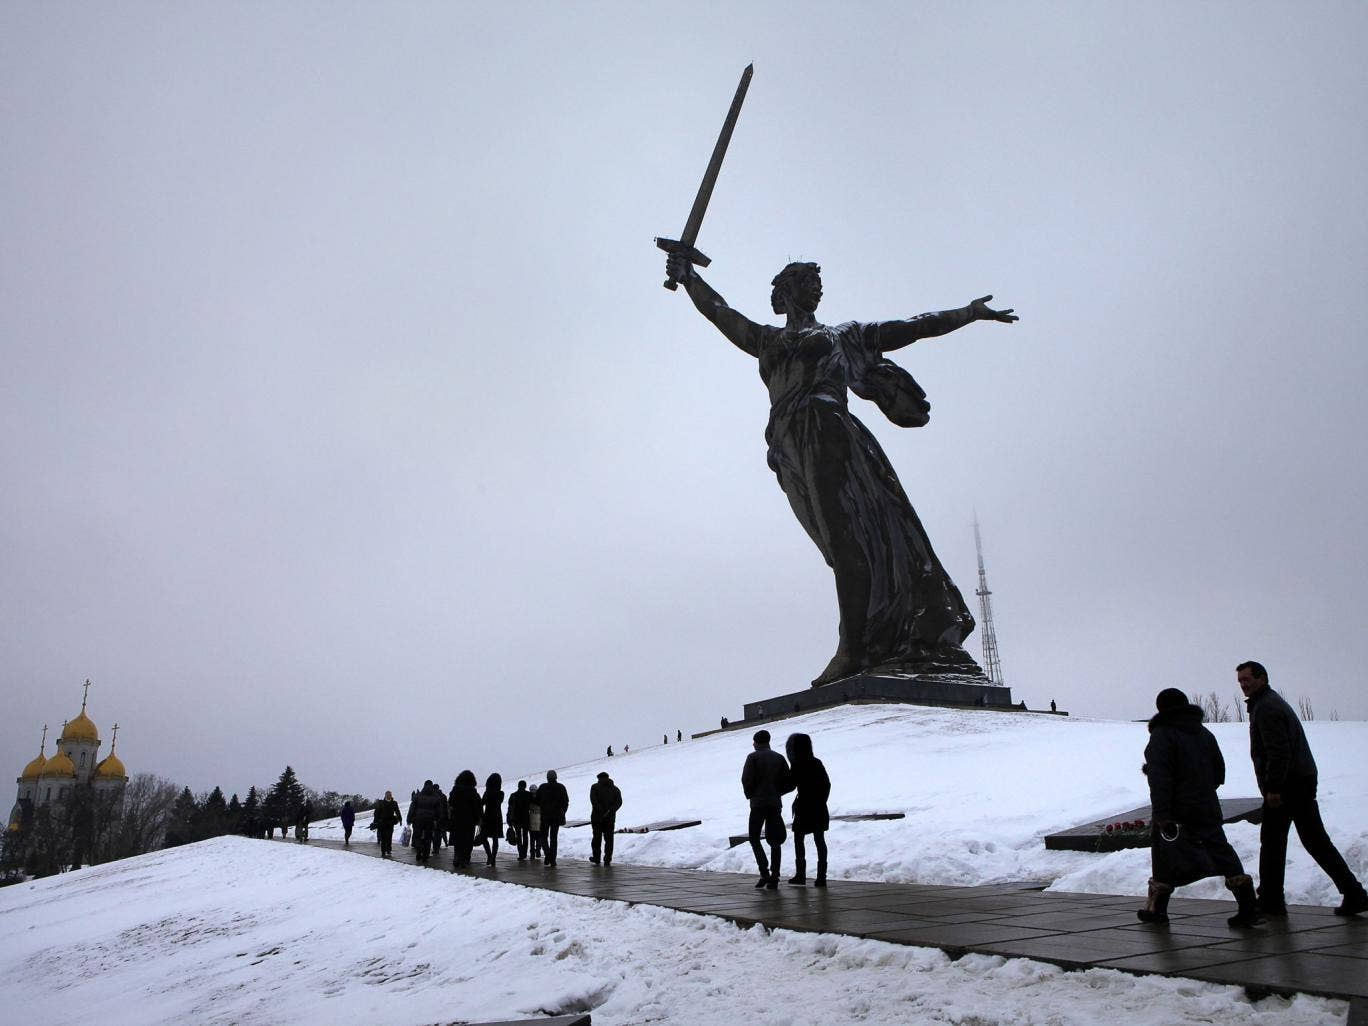 The Mother Russia statue